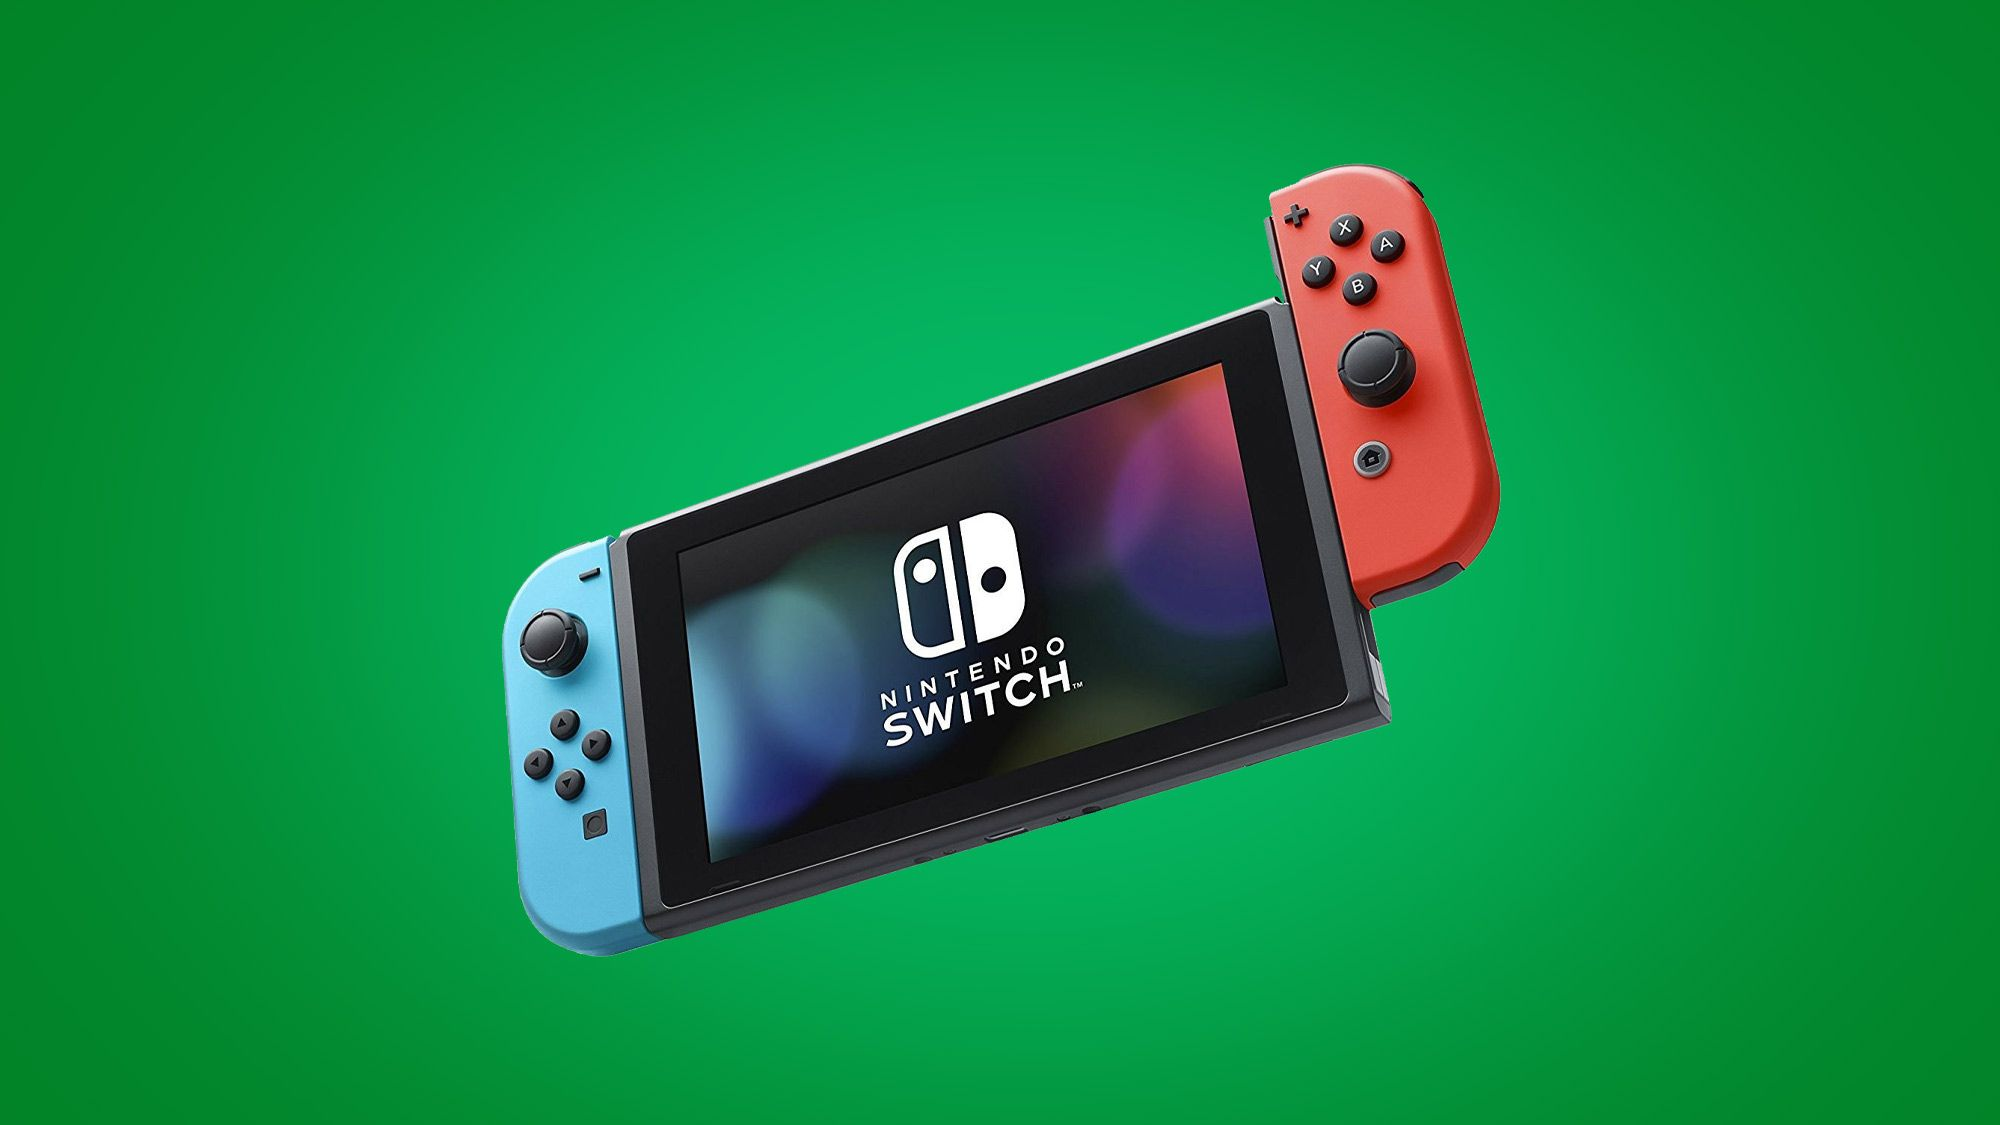 The Cheapest Nintendo Switch Bundles Deals And Sale Prices In November 2020 Cheap Nintendo Switch Nintendo Switch Black Friday Sale